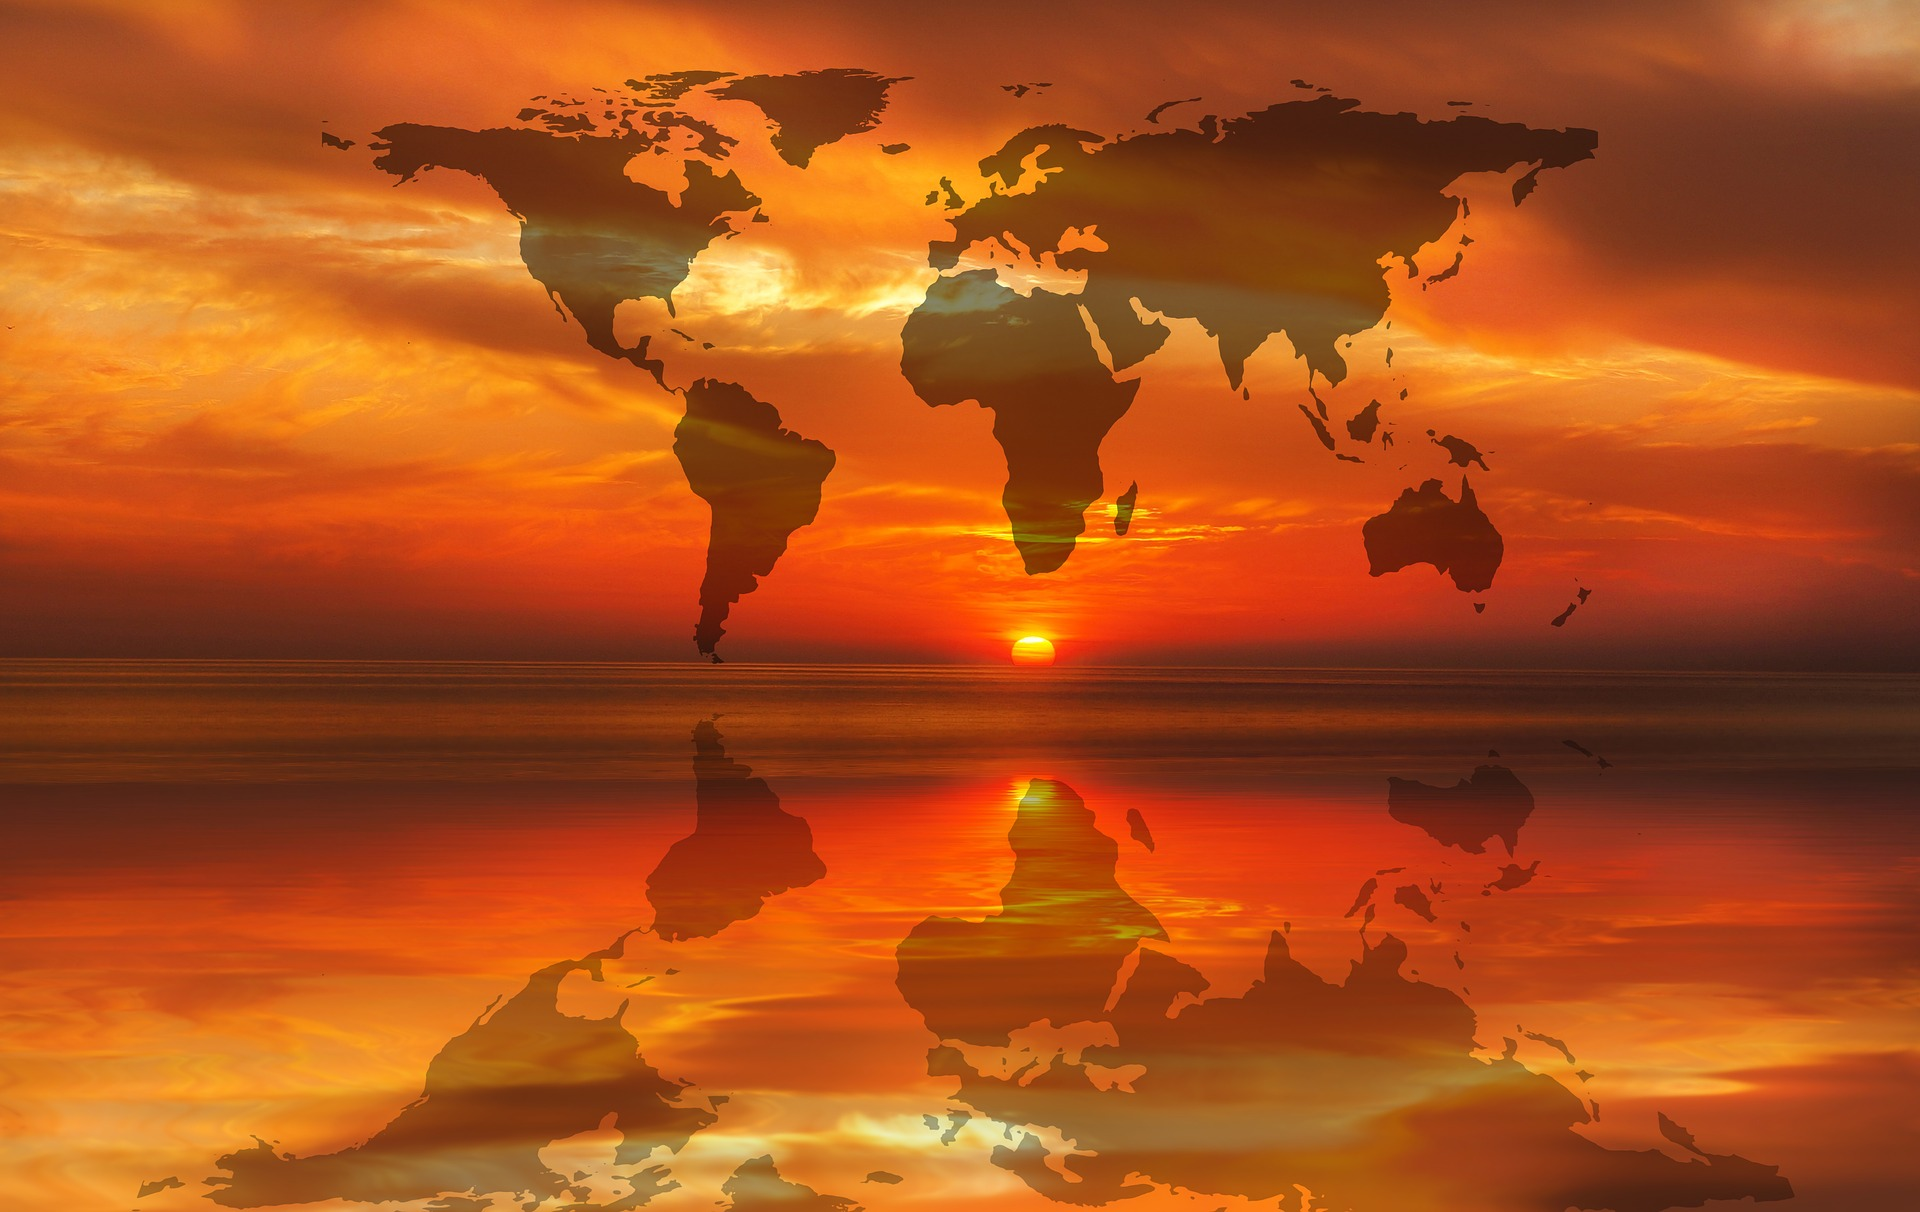 world map sunset